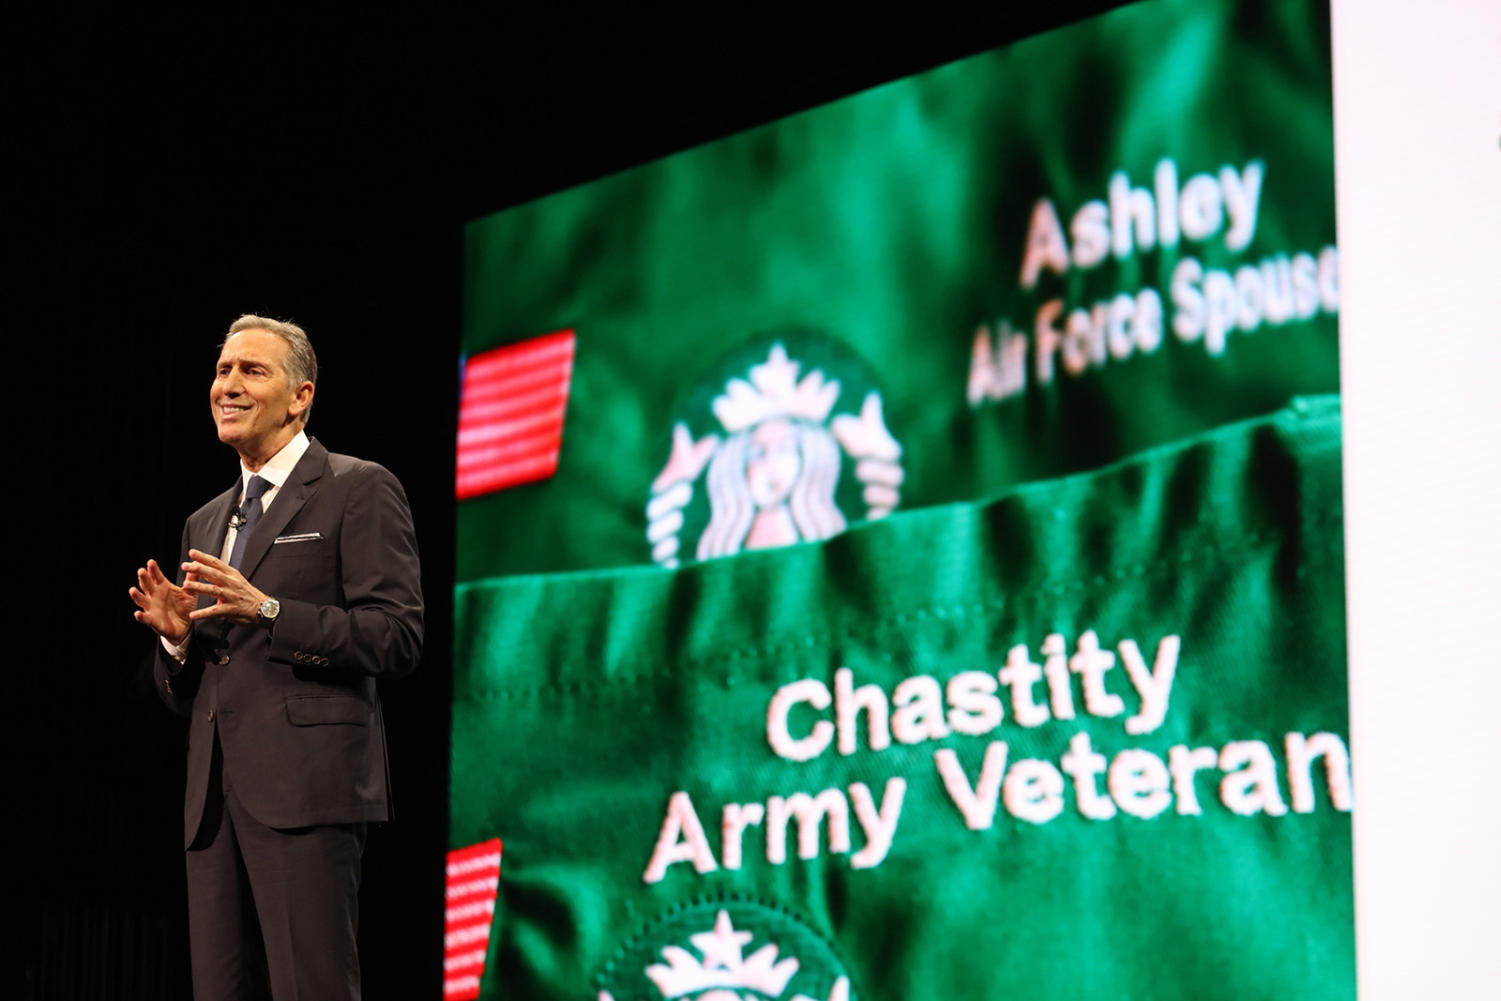 Starbucks Chairman Howard Schultz talks about how many veterans the company will be hiring on March 22, 2017 at the Starbucks shareholders meeting in Seattle, Wash. (Steve Ringman/Seattle Times/TNS)